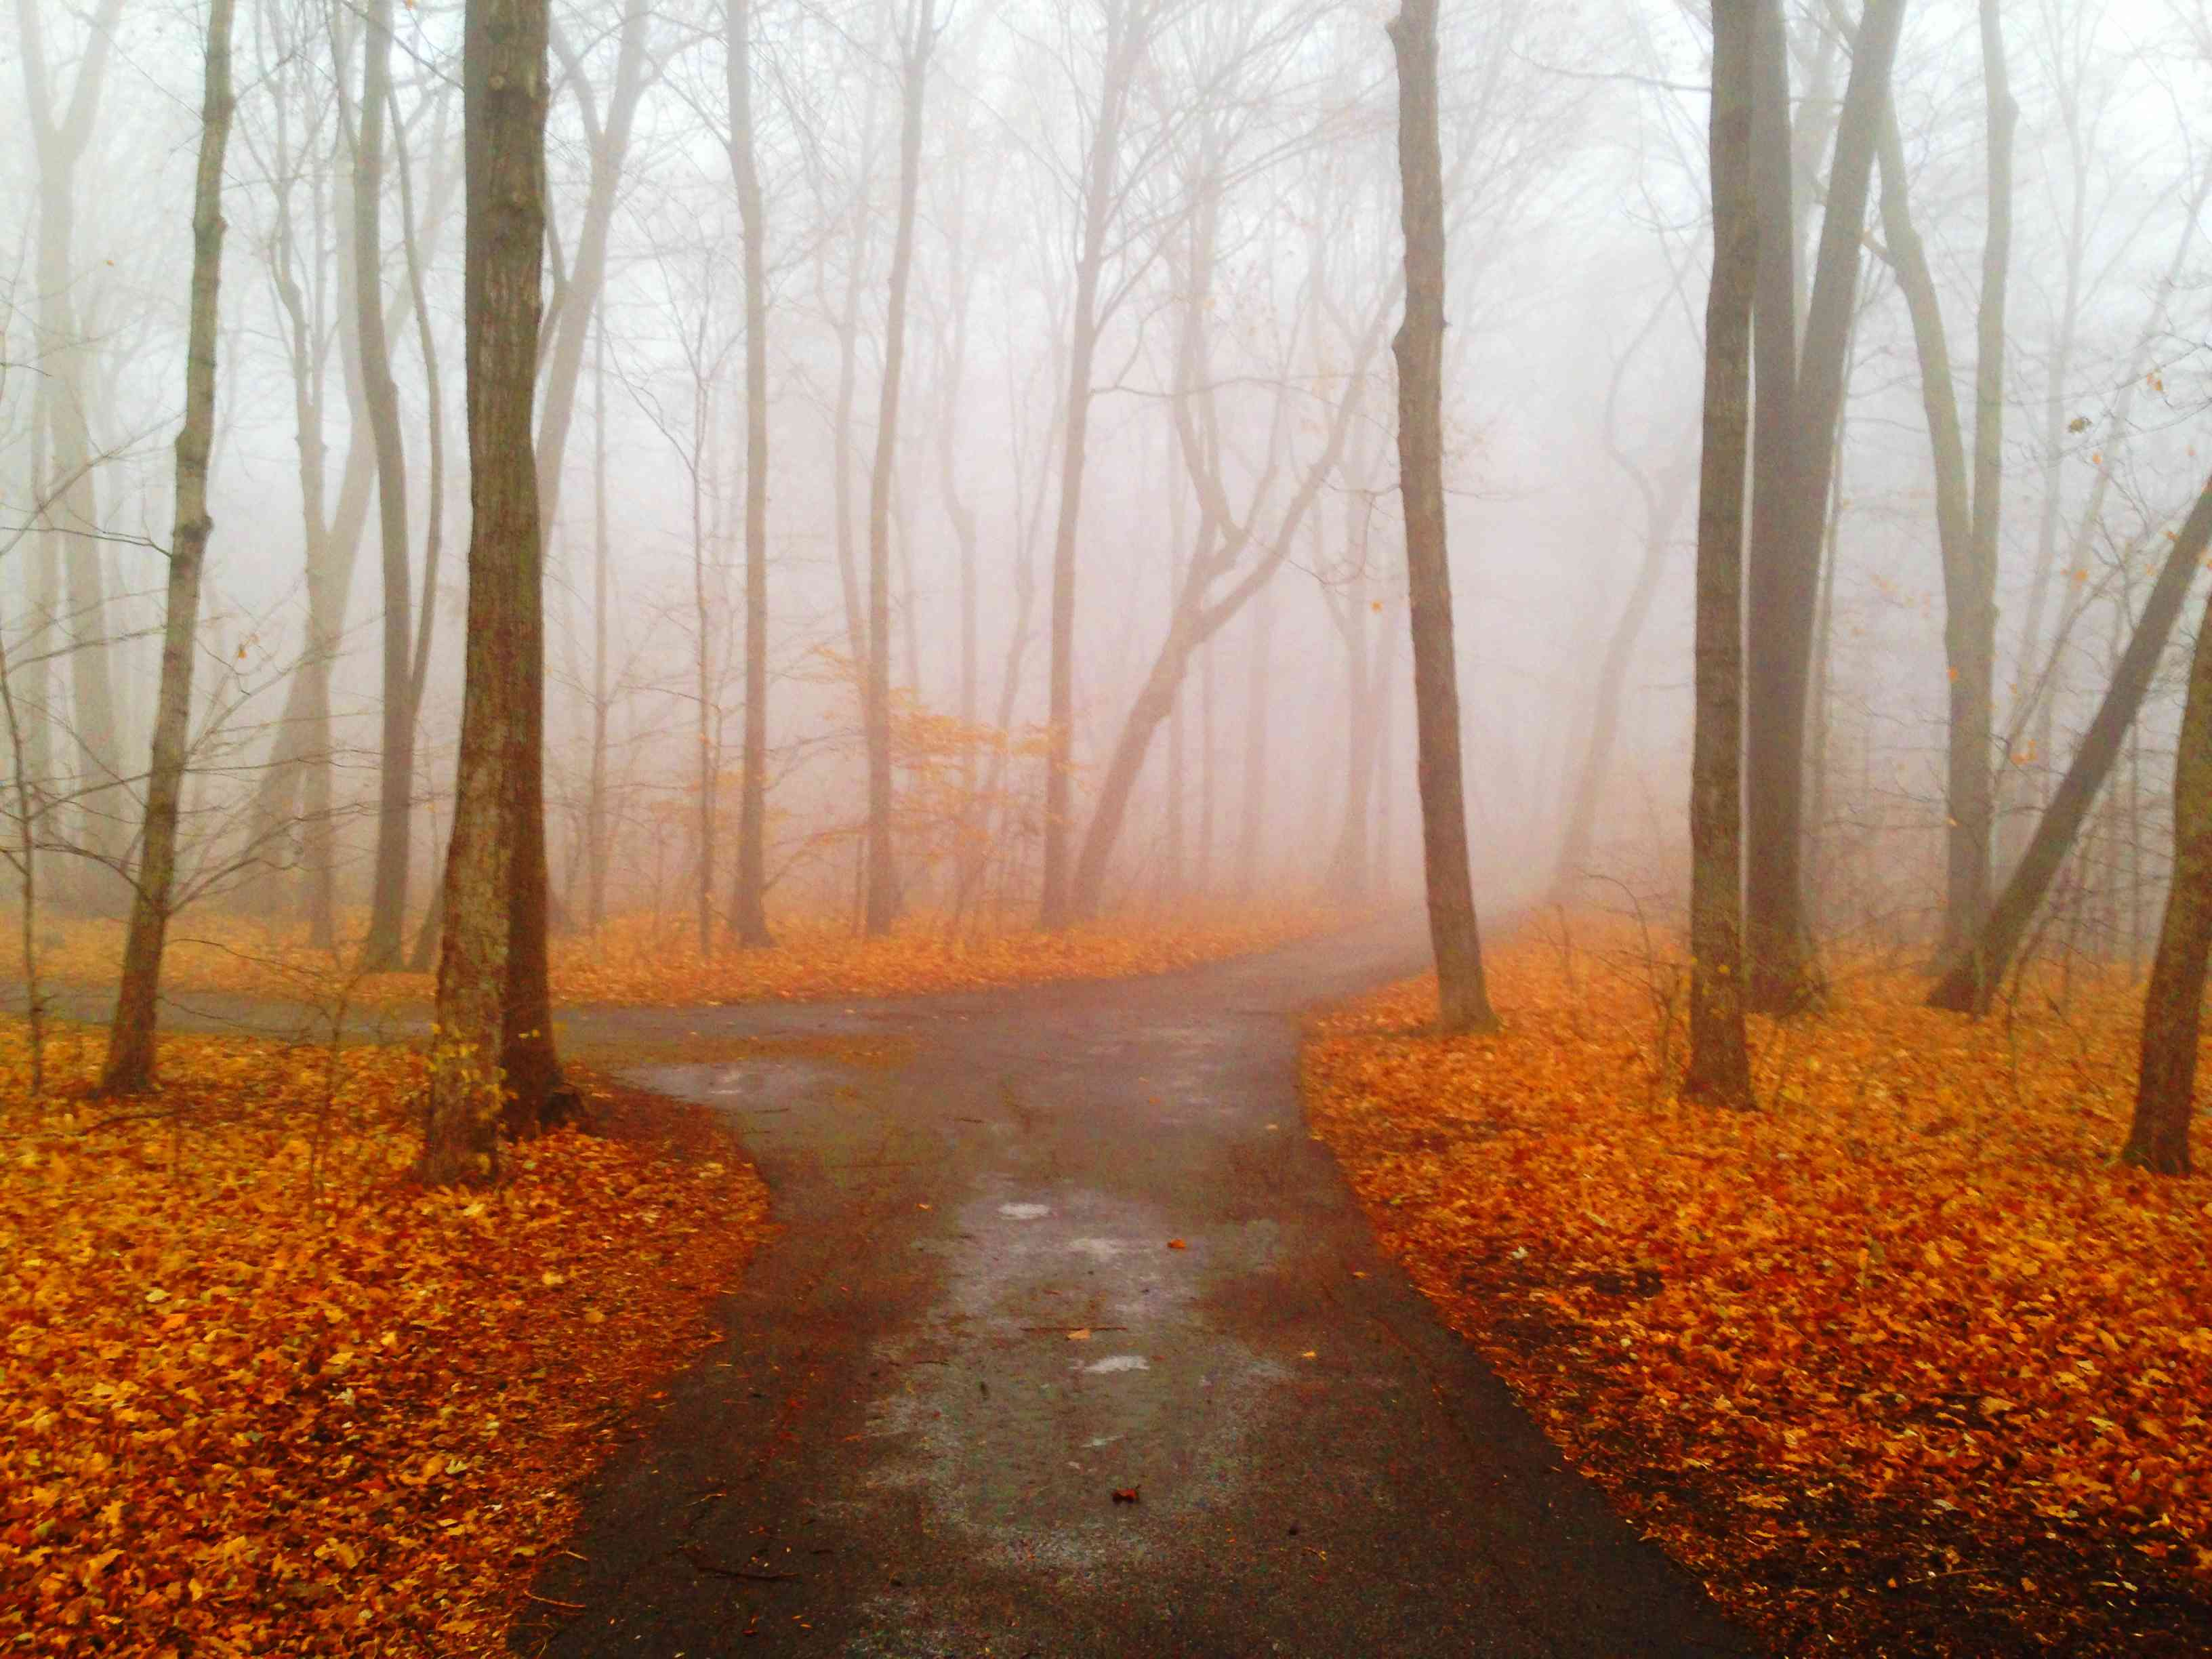 Road Amidst Trees In Forest During Autumn in Mankato